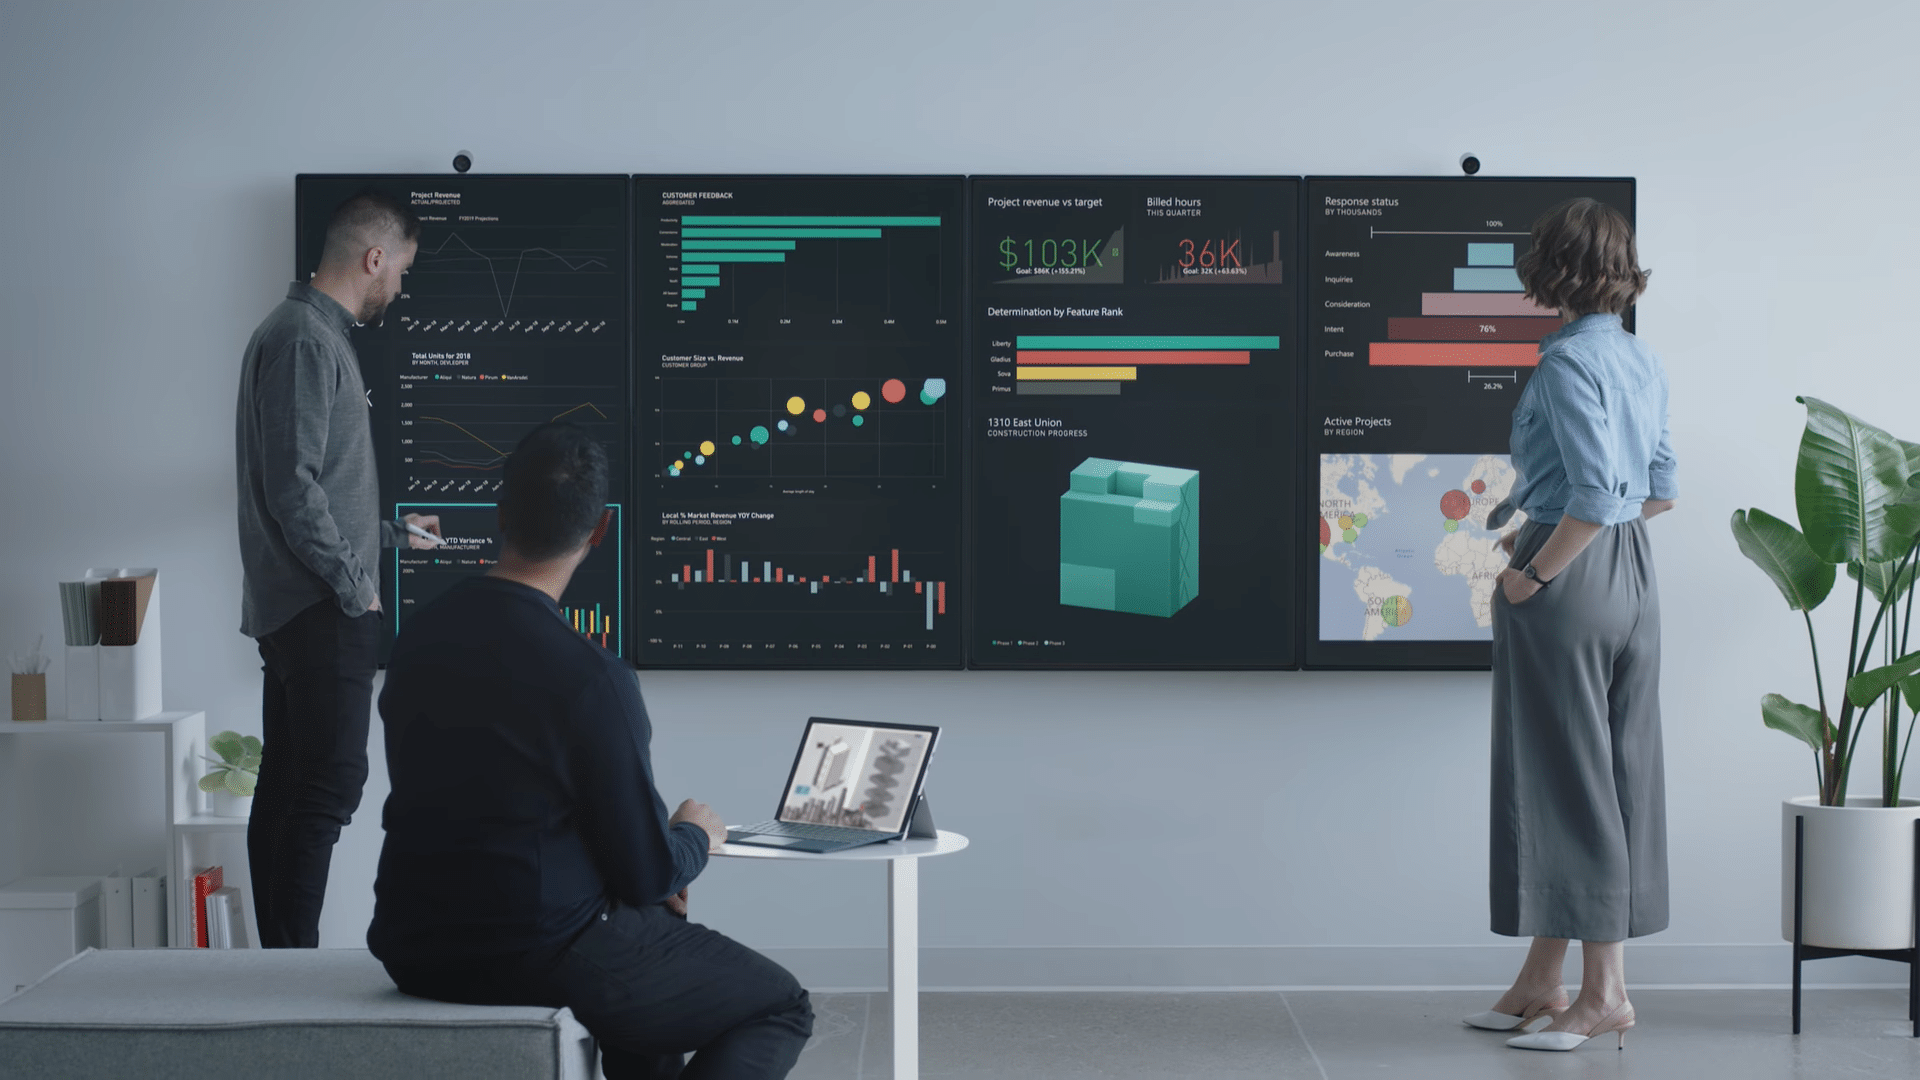 Microsoft Surface Hub 2 Is A 50.5 Inch Computer With A 4K+ Display And Windows 10